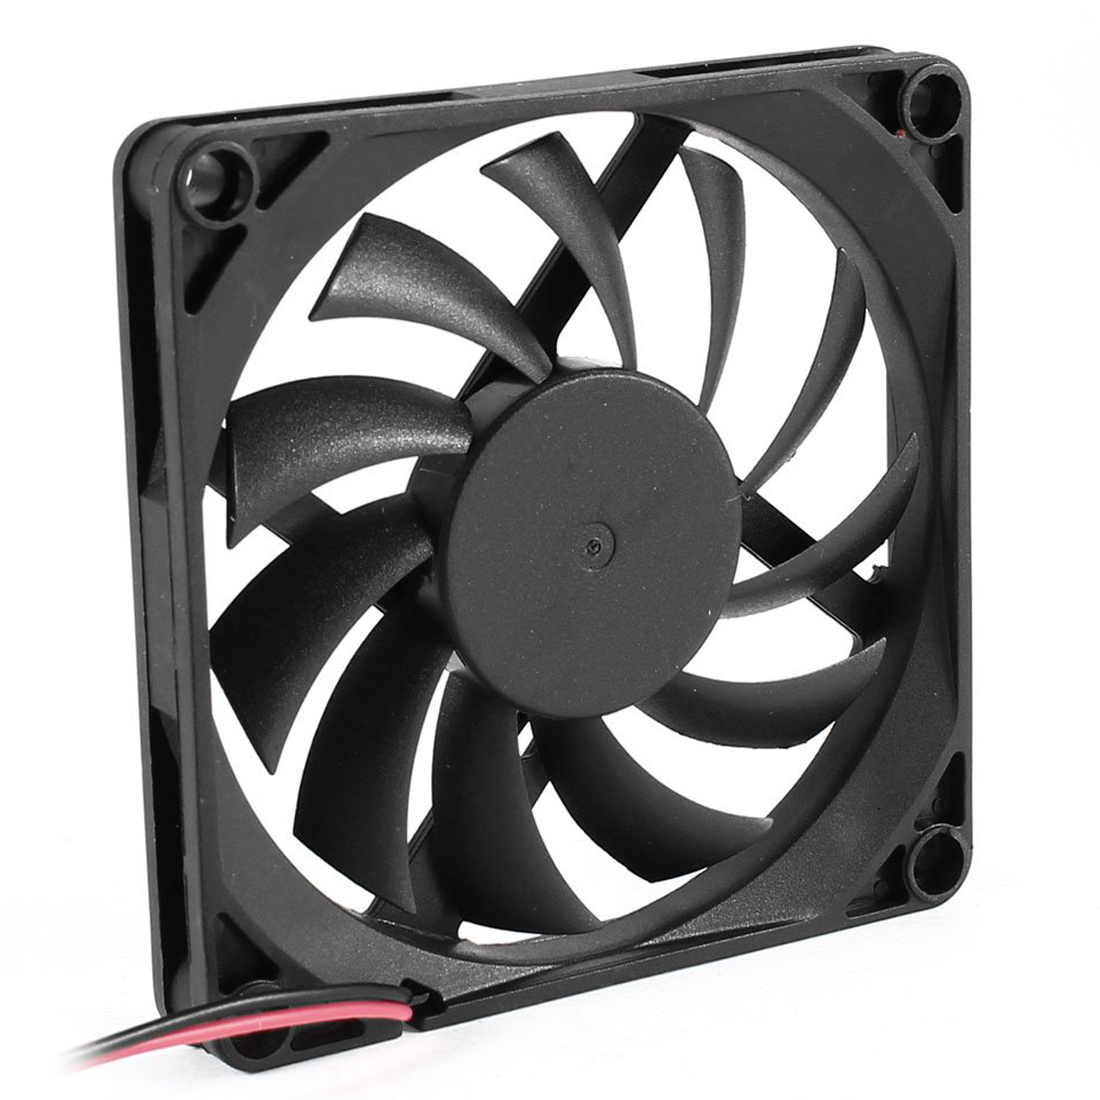 PROMOTION! Hot 80mm 2 Pin Connector Cooling Fan for Computer Case CPU Cooler Radiator 2016 new 80mm 2 pin connector cooling fan for computer case cpu cooler radiator